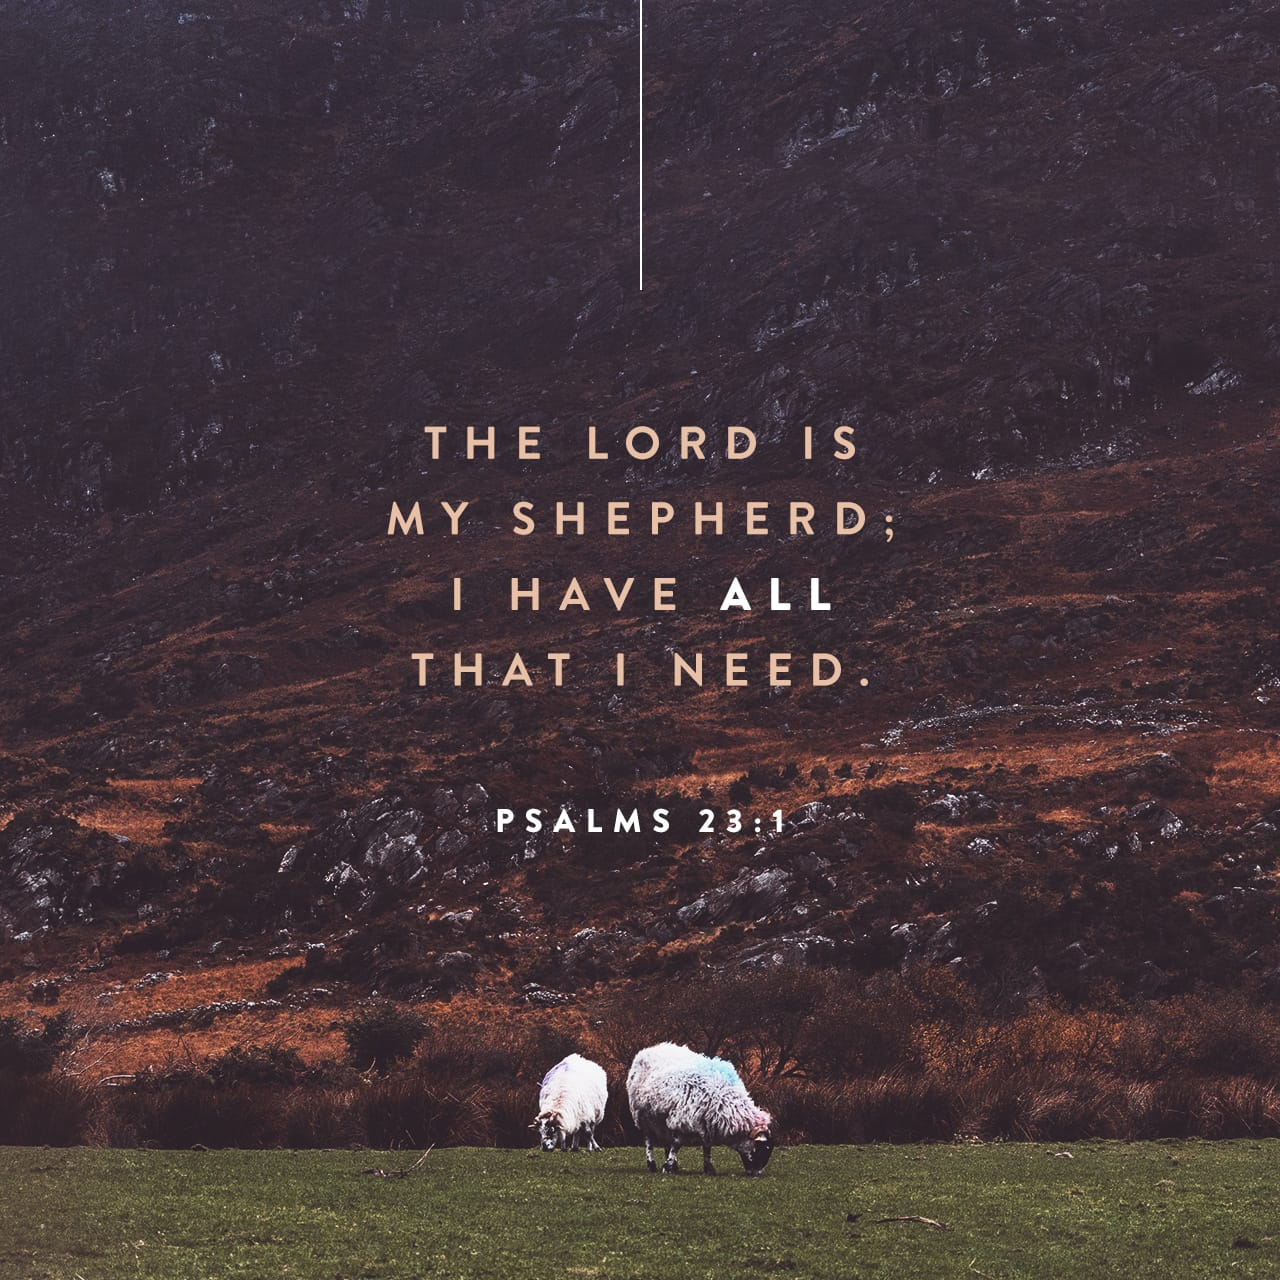 Psalms 23 1 The Lord Is My Shepherd I Have All That I Need New Living Translation Nlt Download The Bible App Now